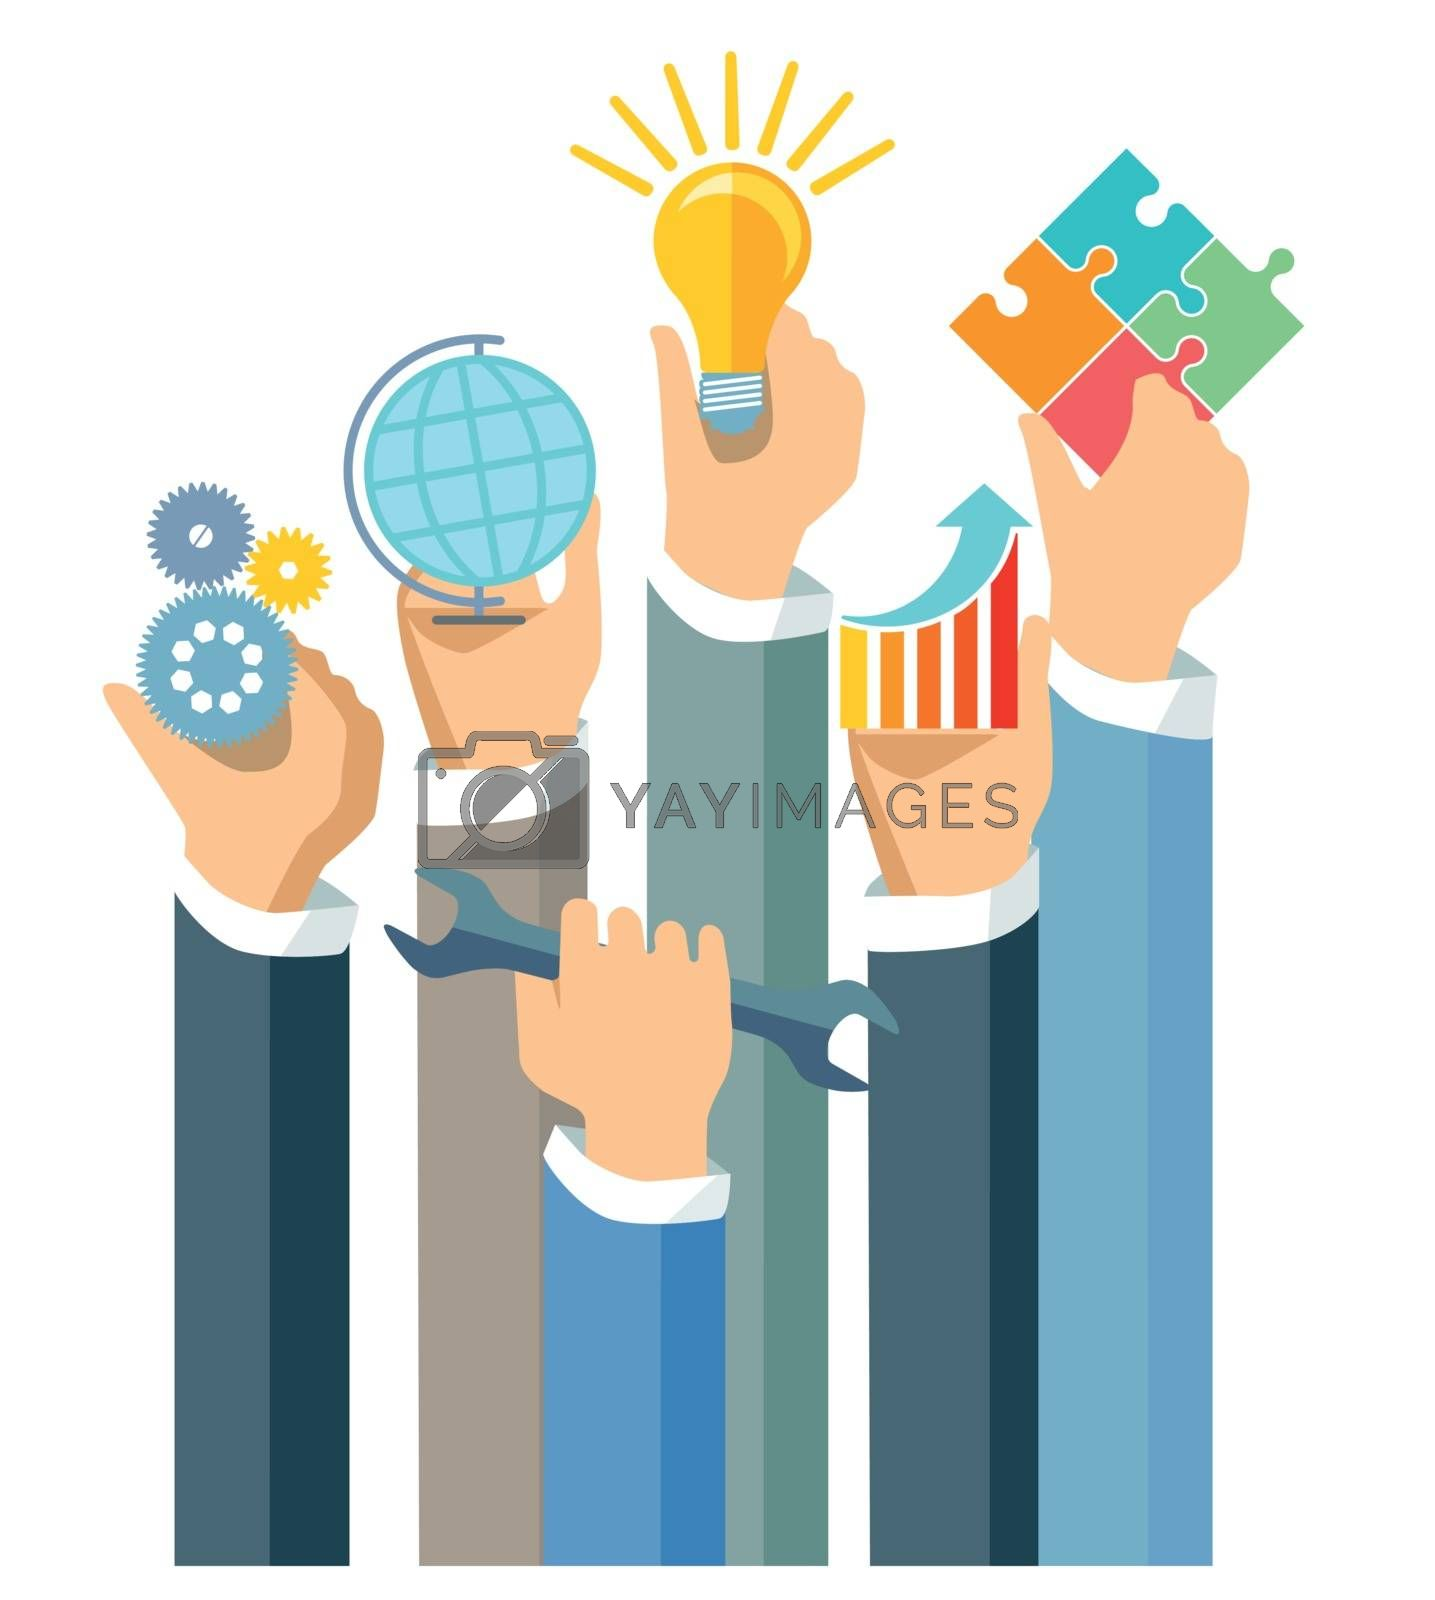 Showing business performance, illustration